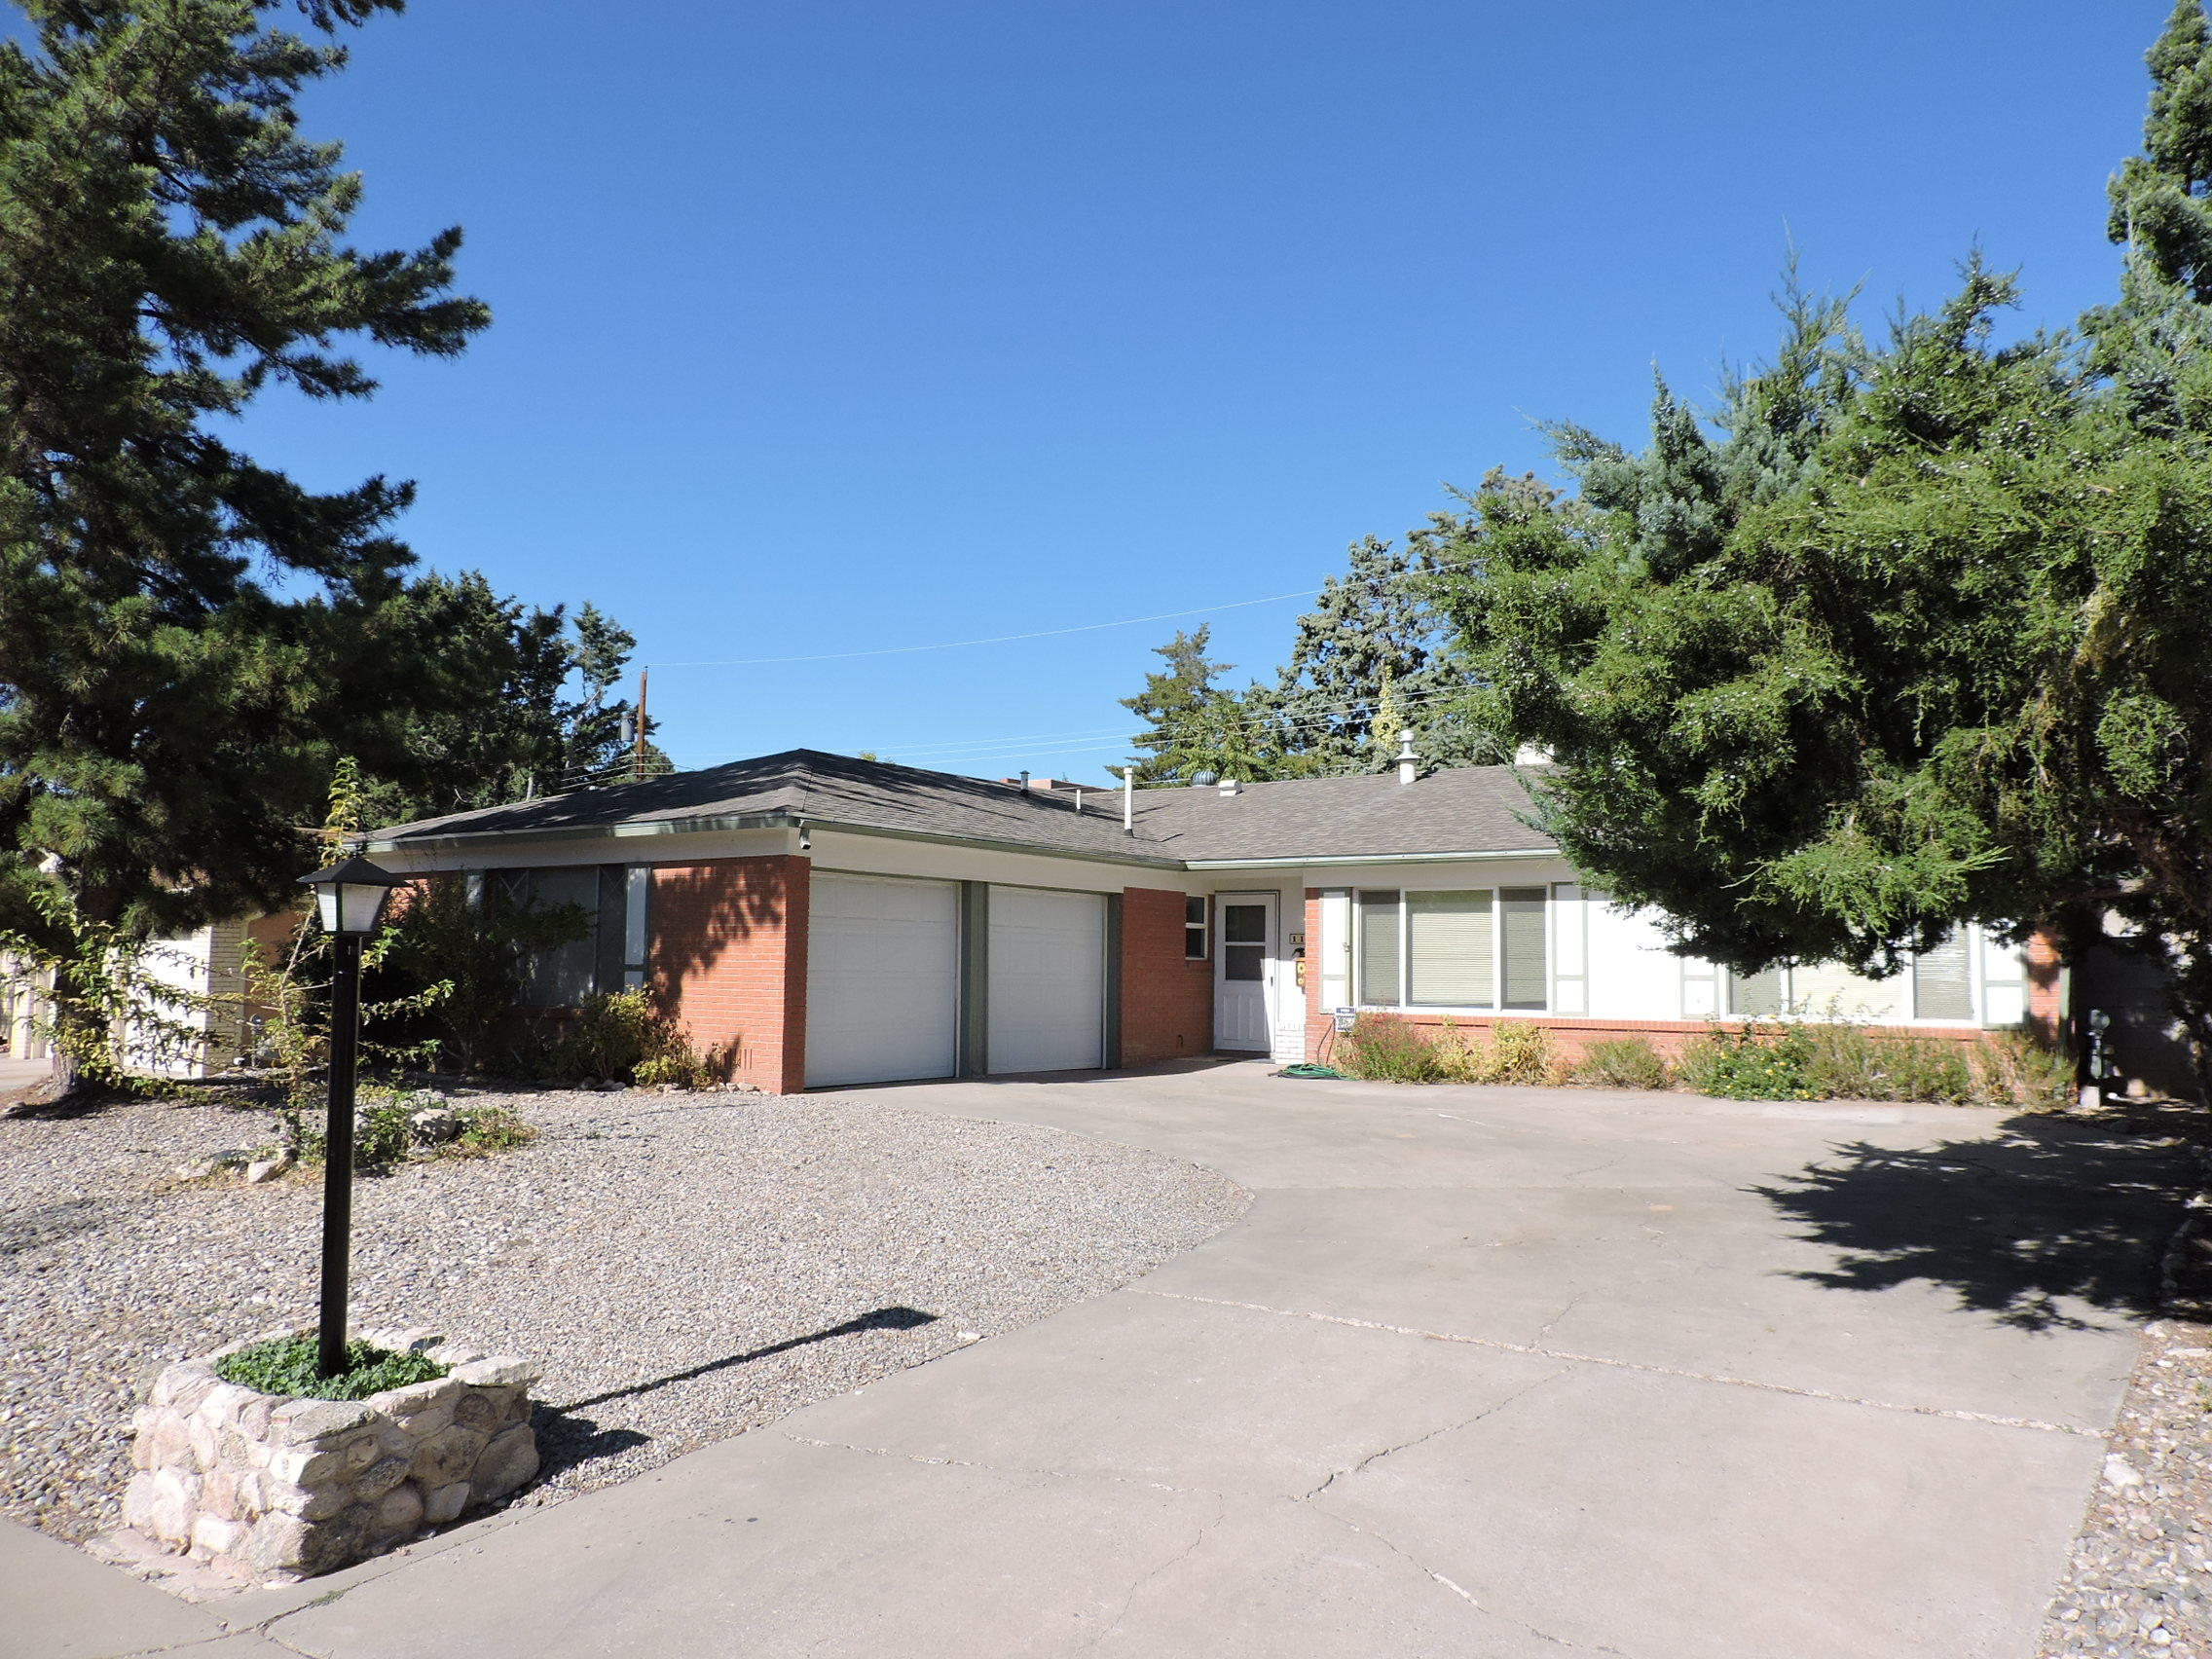 Great holiday park neighborhood, one story ranch home could use a little tlc. This desirable neighborhood is nearby many ammenities, easy access to highway, restaurants, grocery store and schools all nearby. Come see this home for yourself and bring your imagination for the potential it can become!  Offer now